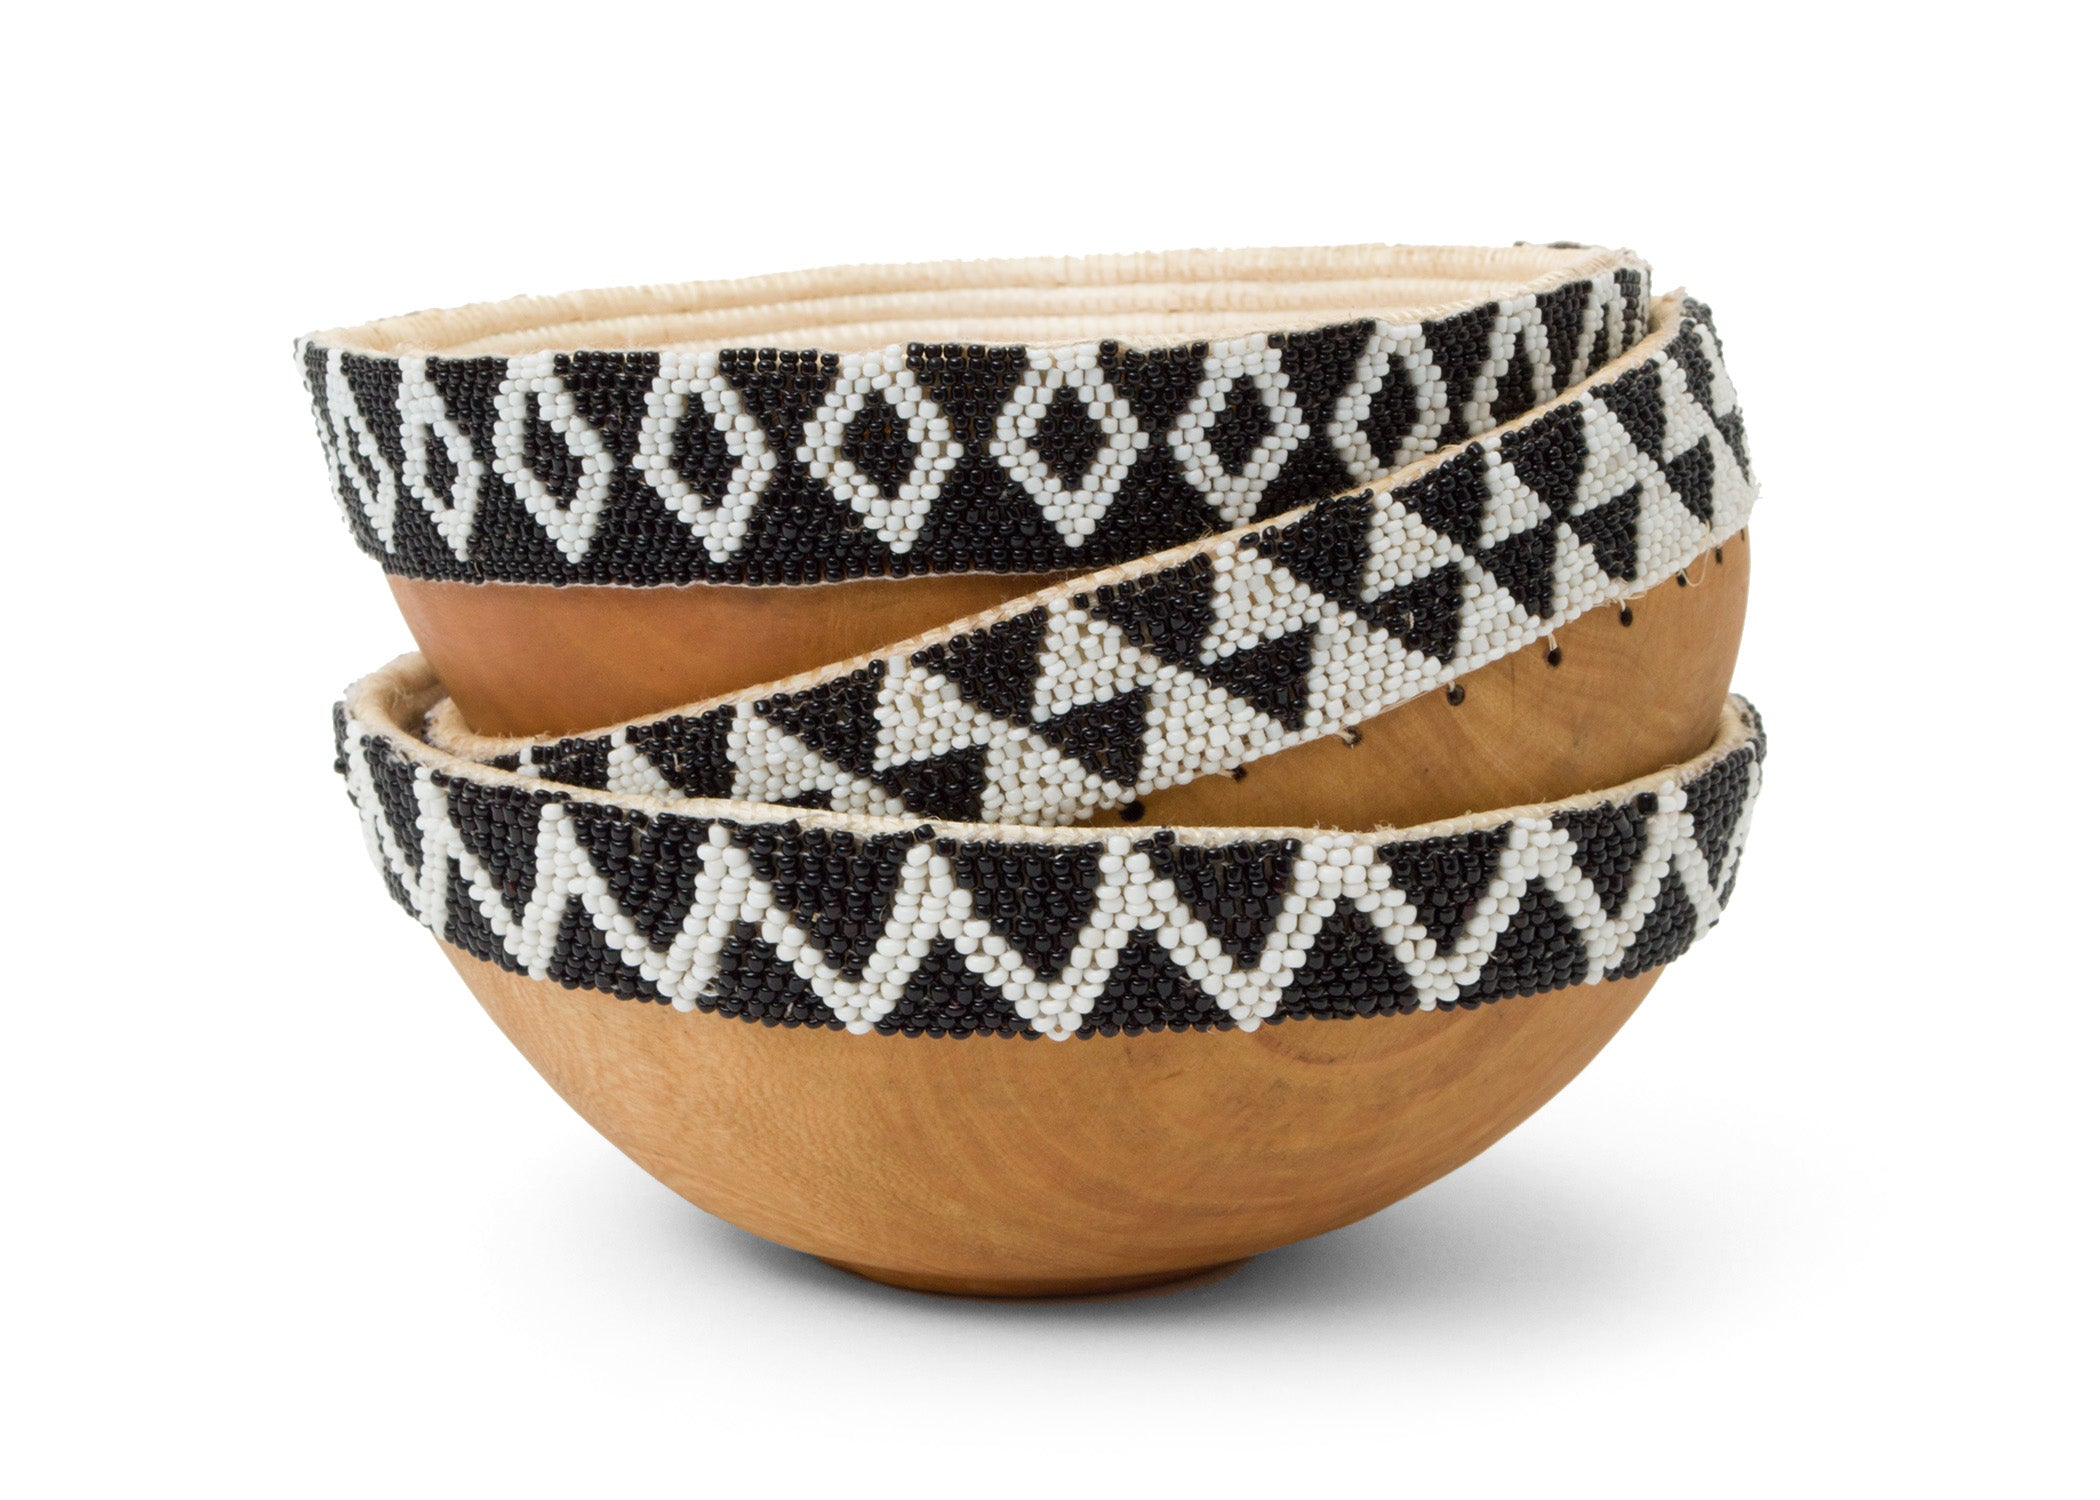 Black + White Beaded Wooden Bowl II - KAZI - Artisan made high quality home decor and wall art